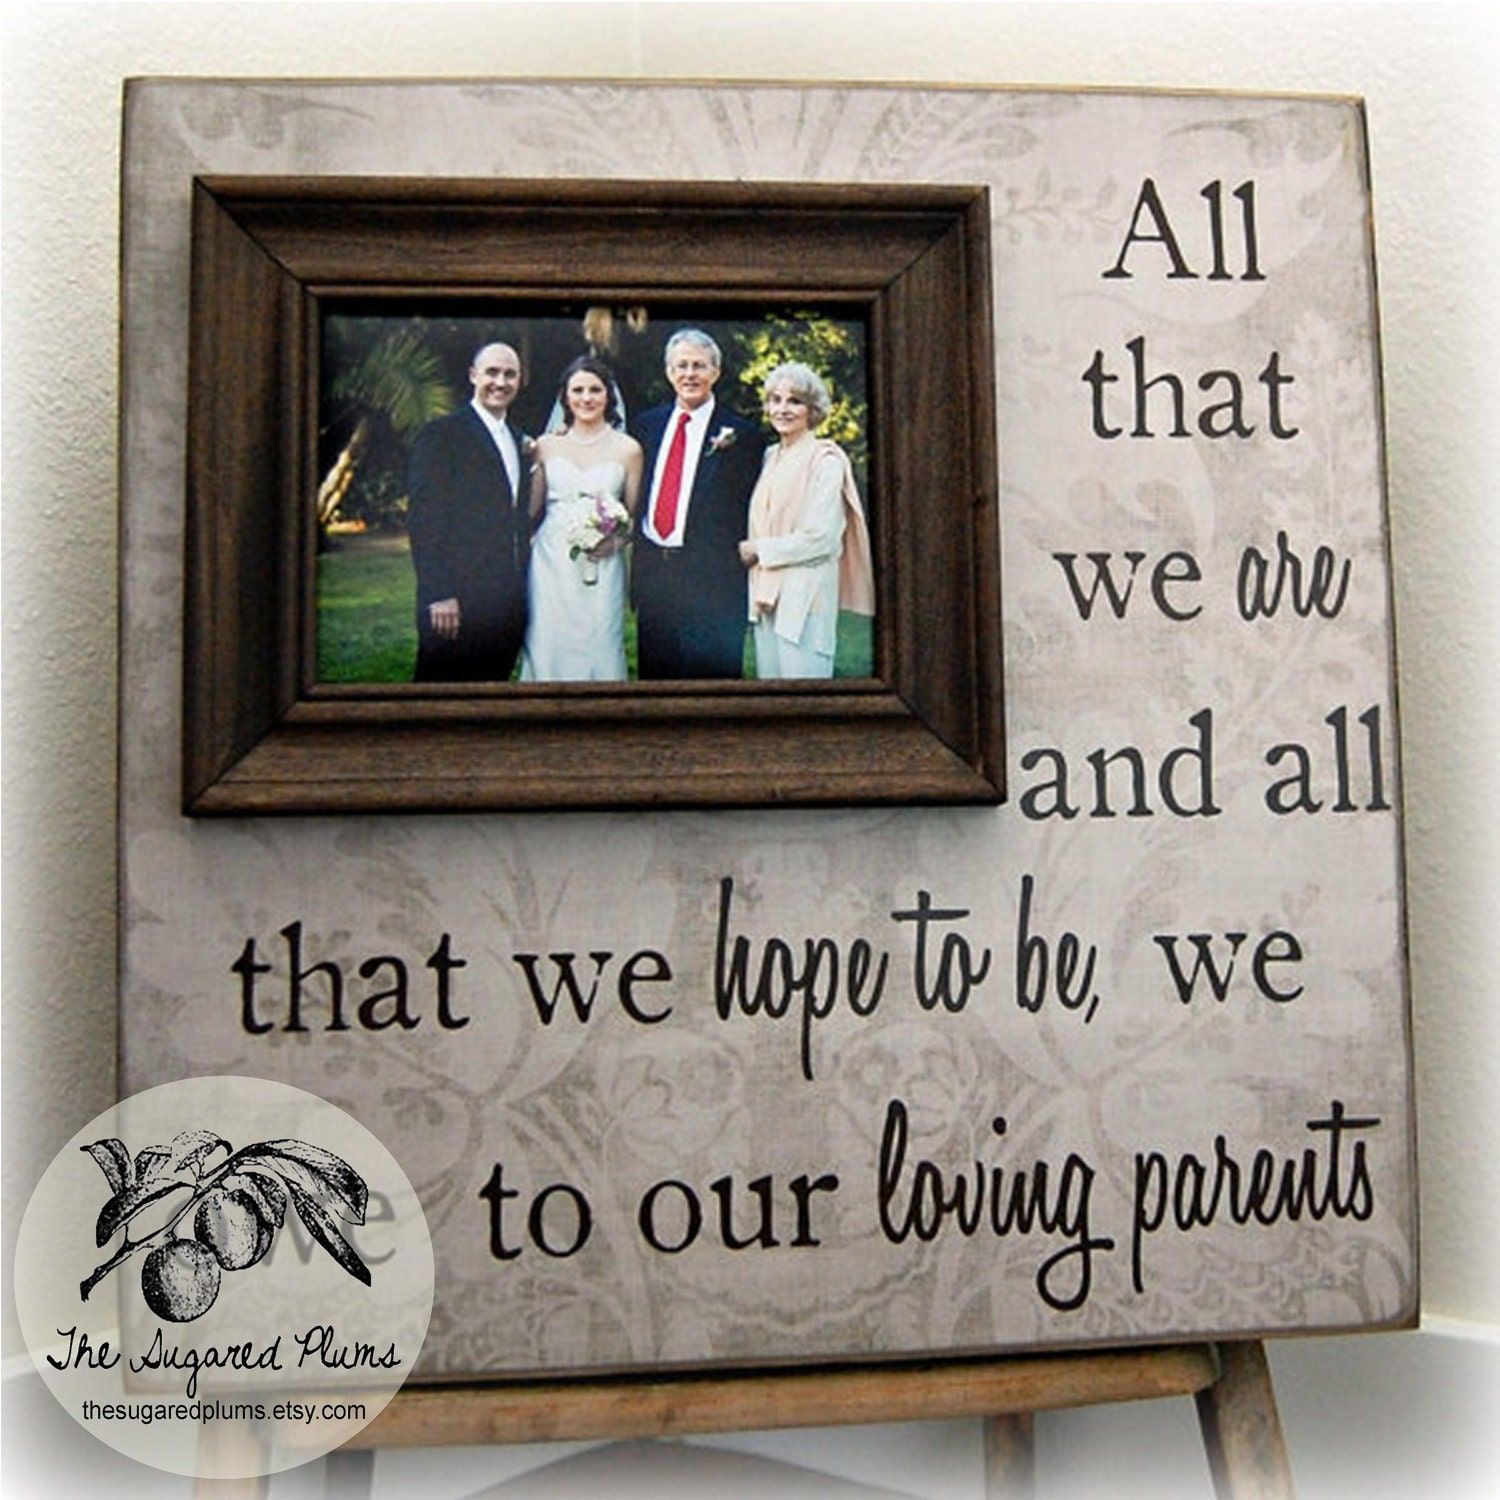 Gifts For Parents Wedding Thank You: Thank You Gift For Parents Wedding Thank You Parents Thank